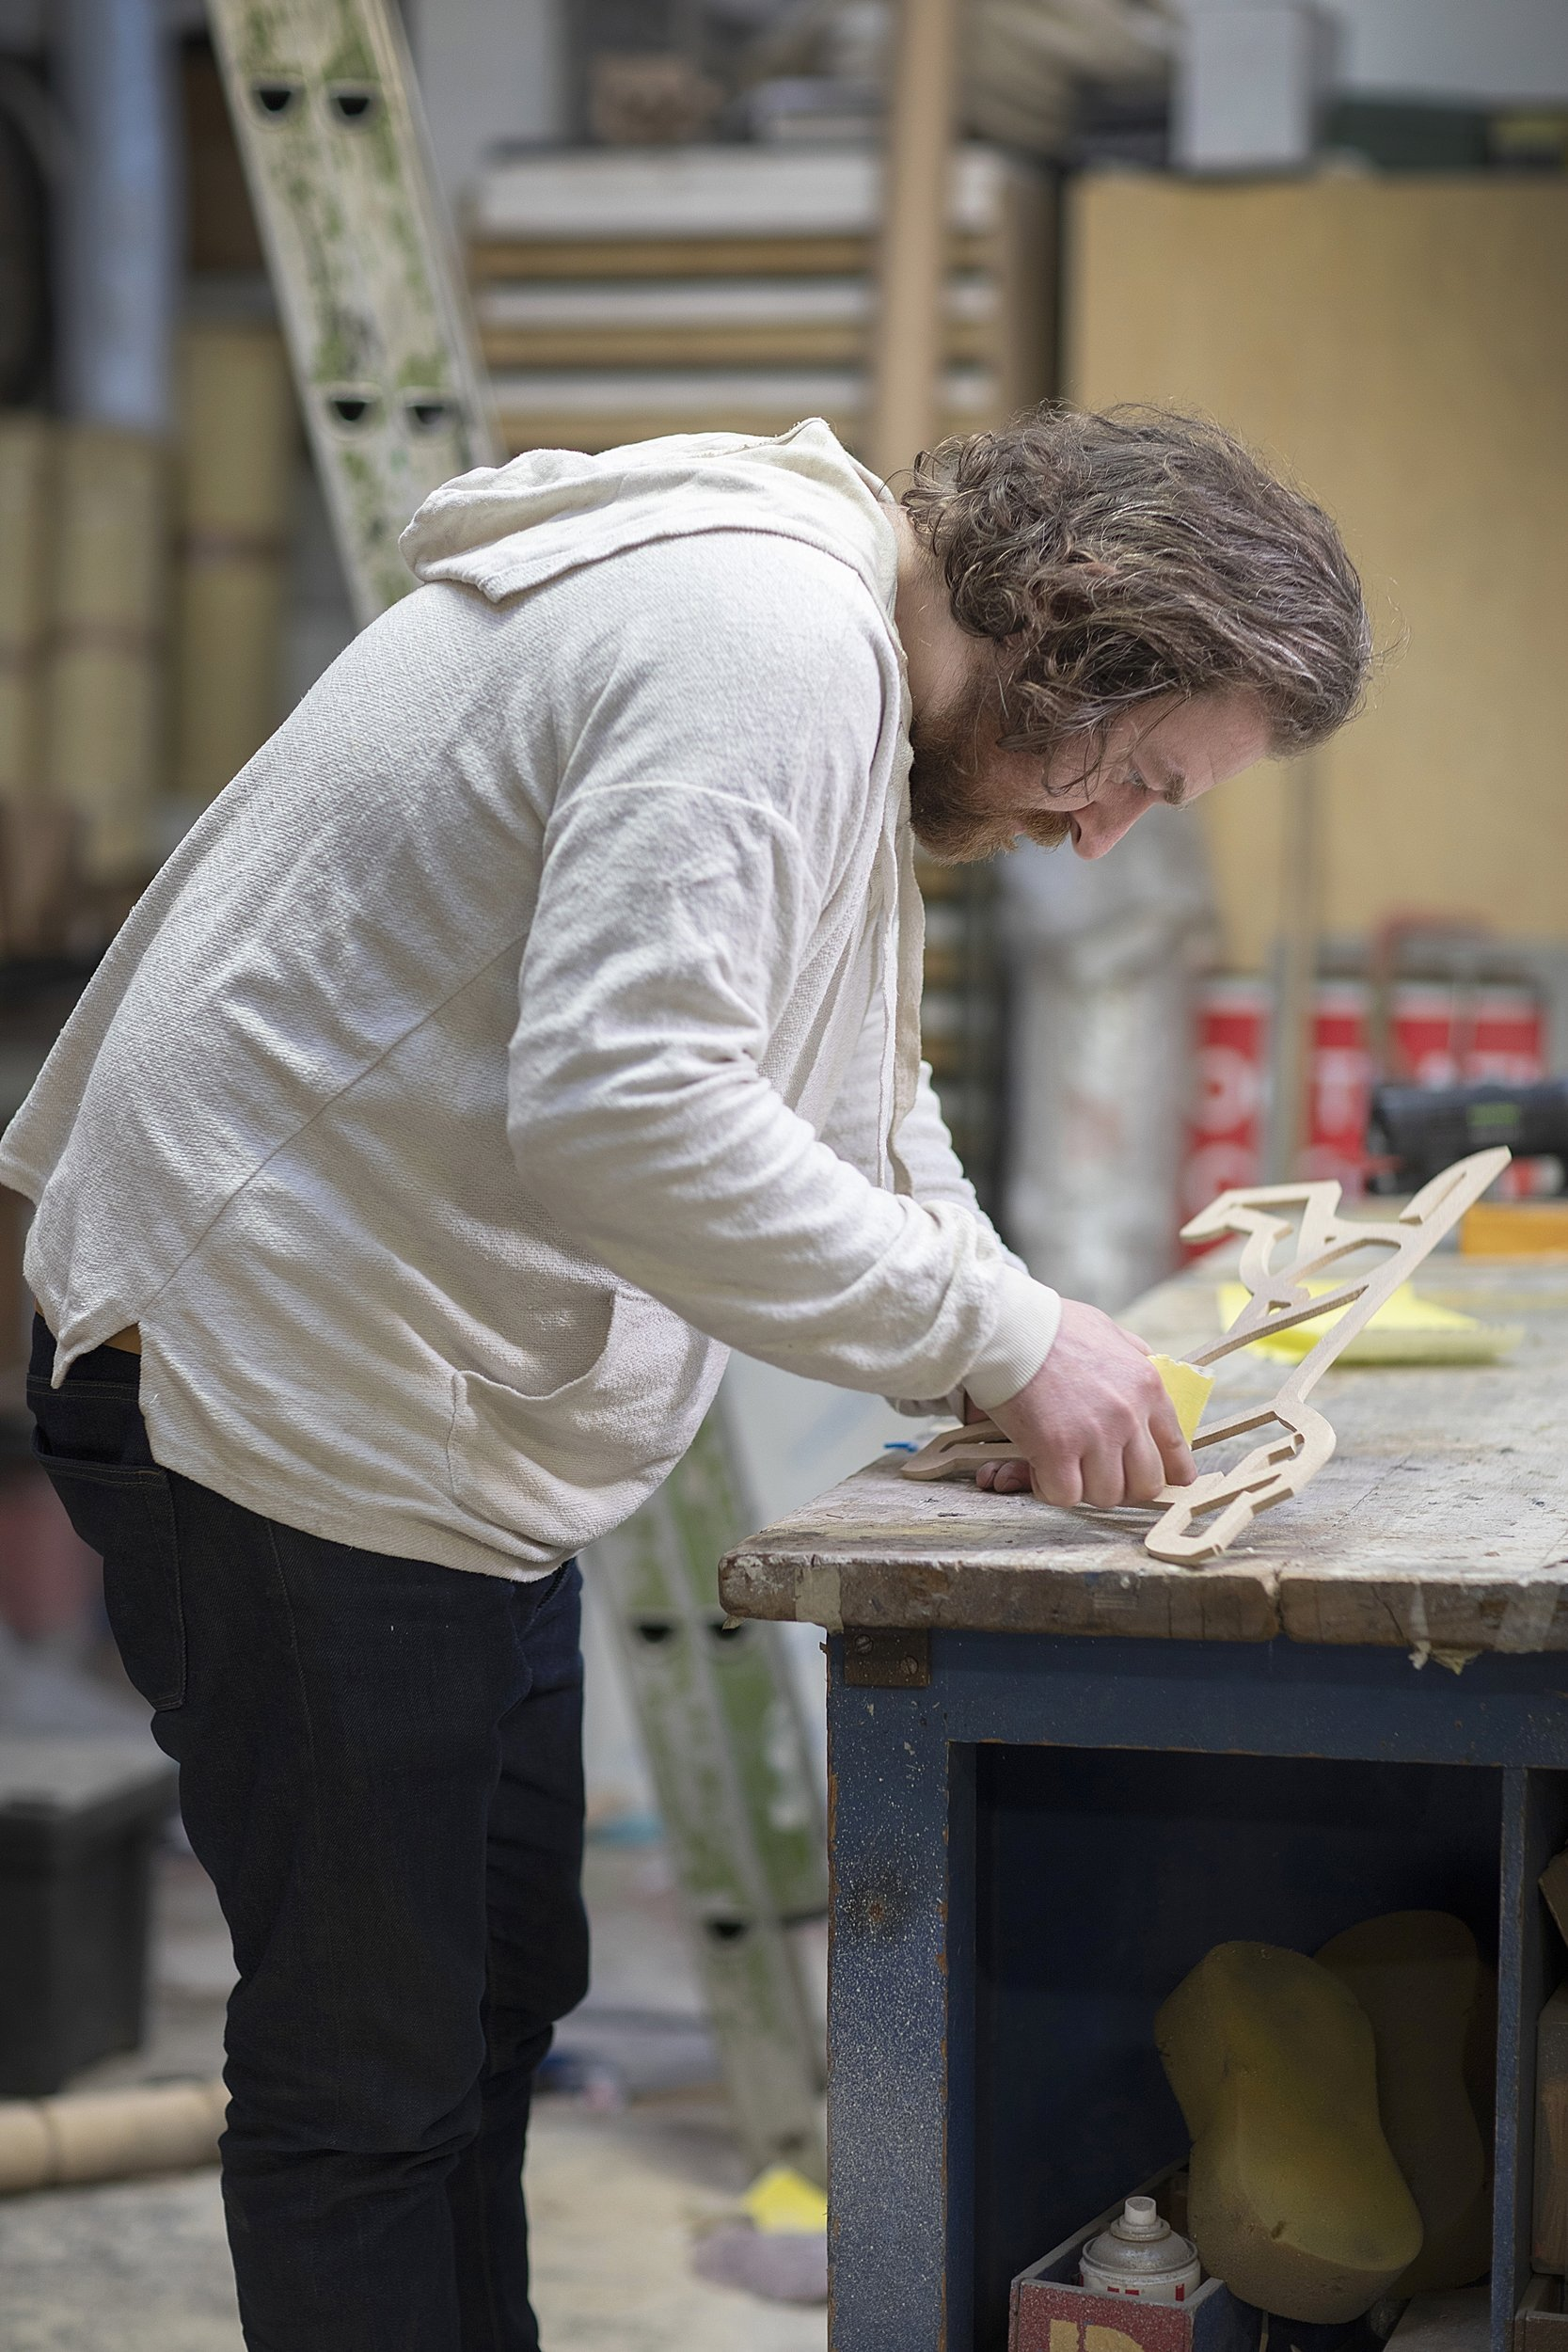 Liam Hopkins, owner and designer of design studio Lazerian at work. He is sanding his mascot Gerald that has been sculptured out of wood.